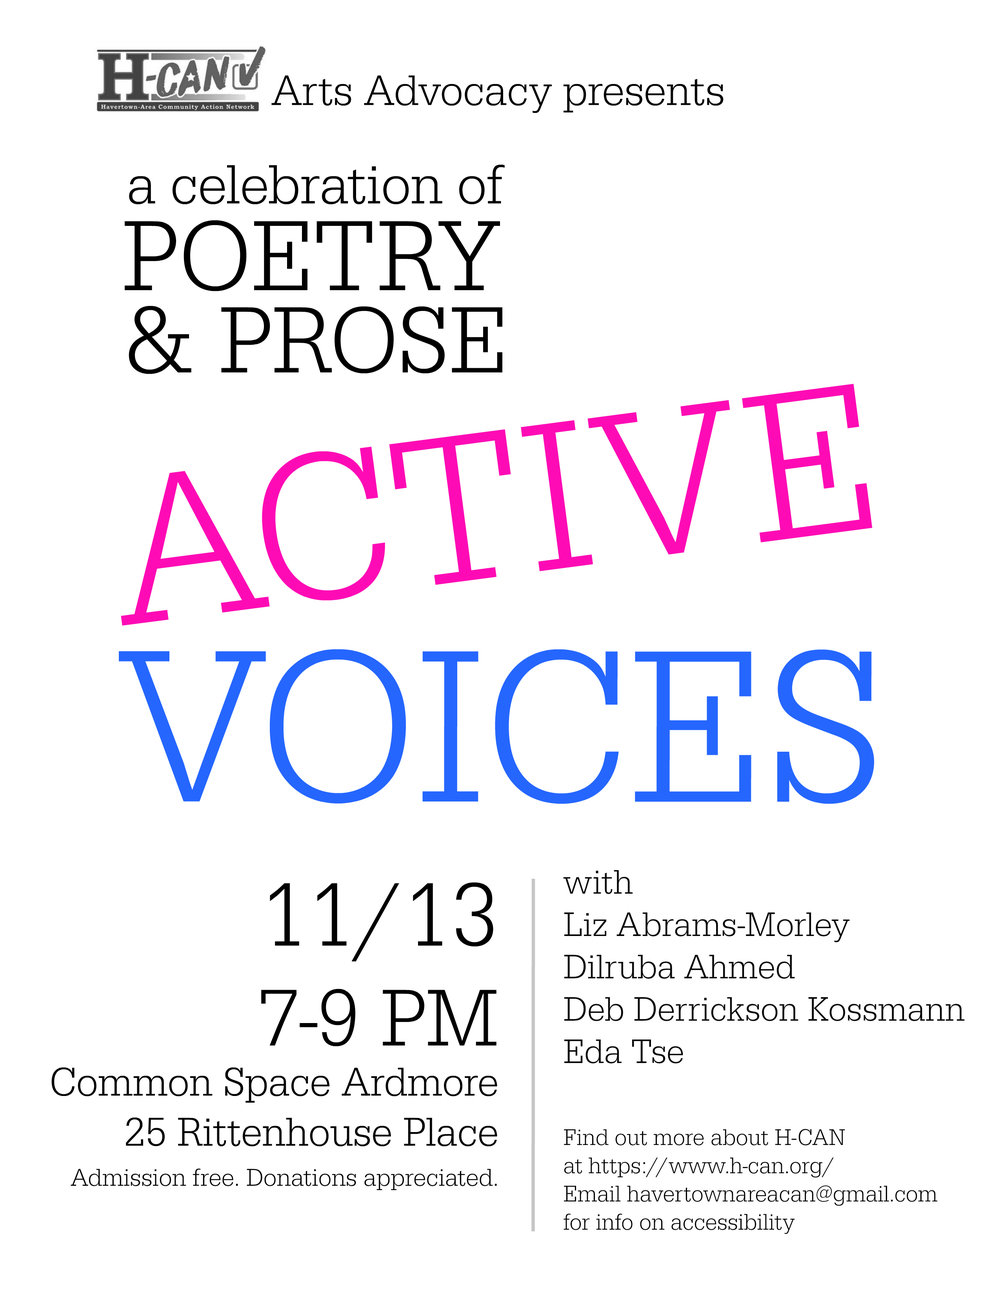 Poetry and Prose event on November 13th.